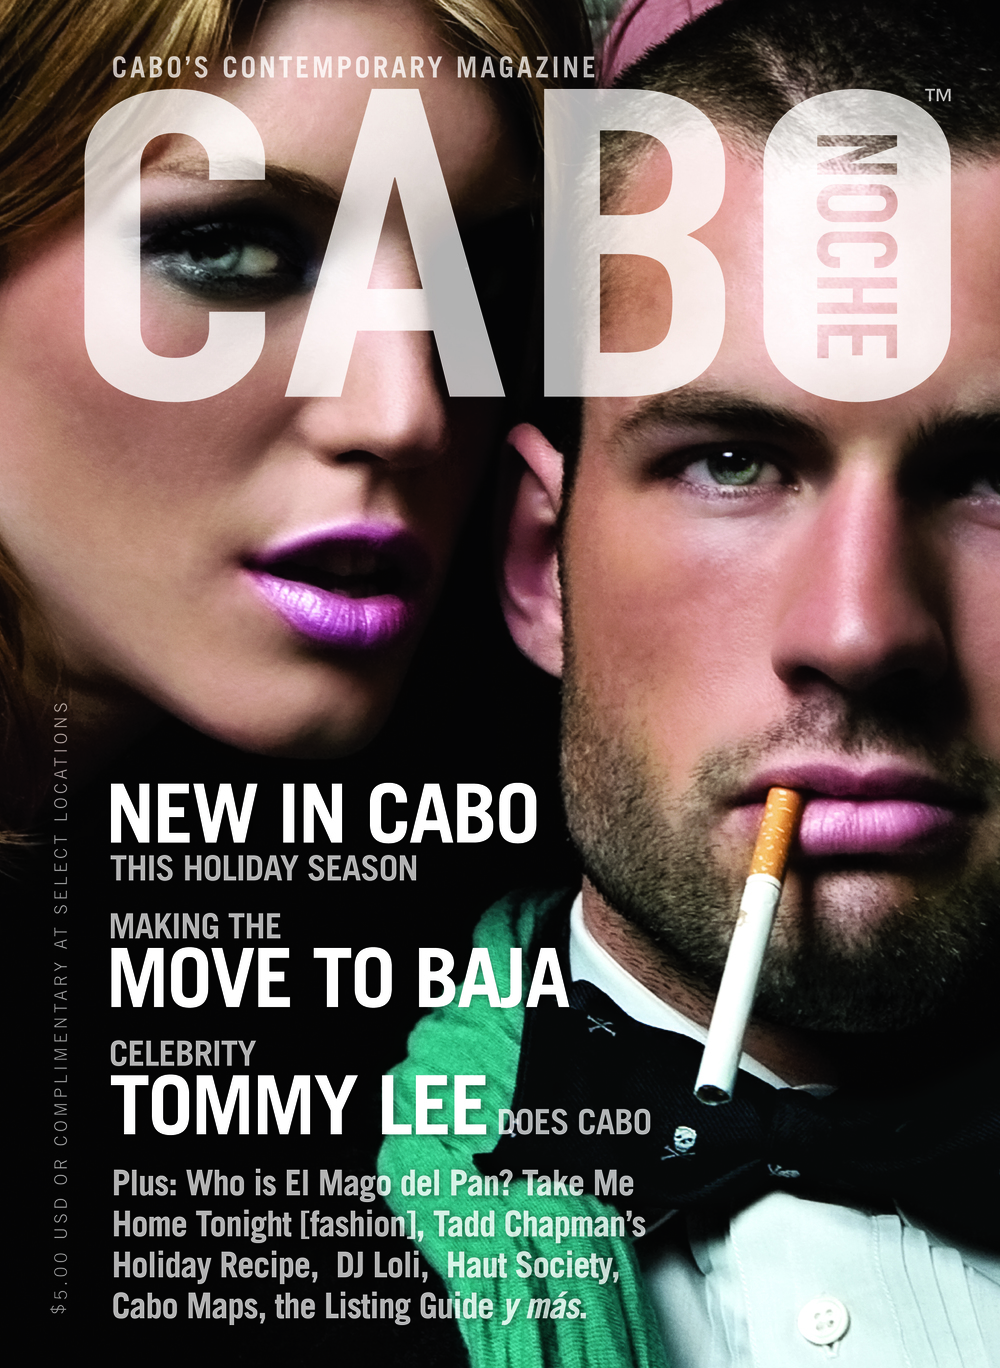 cabo-social-magazine-issue-13.jpg